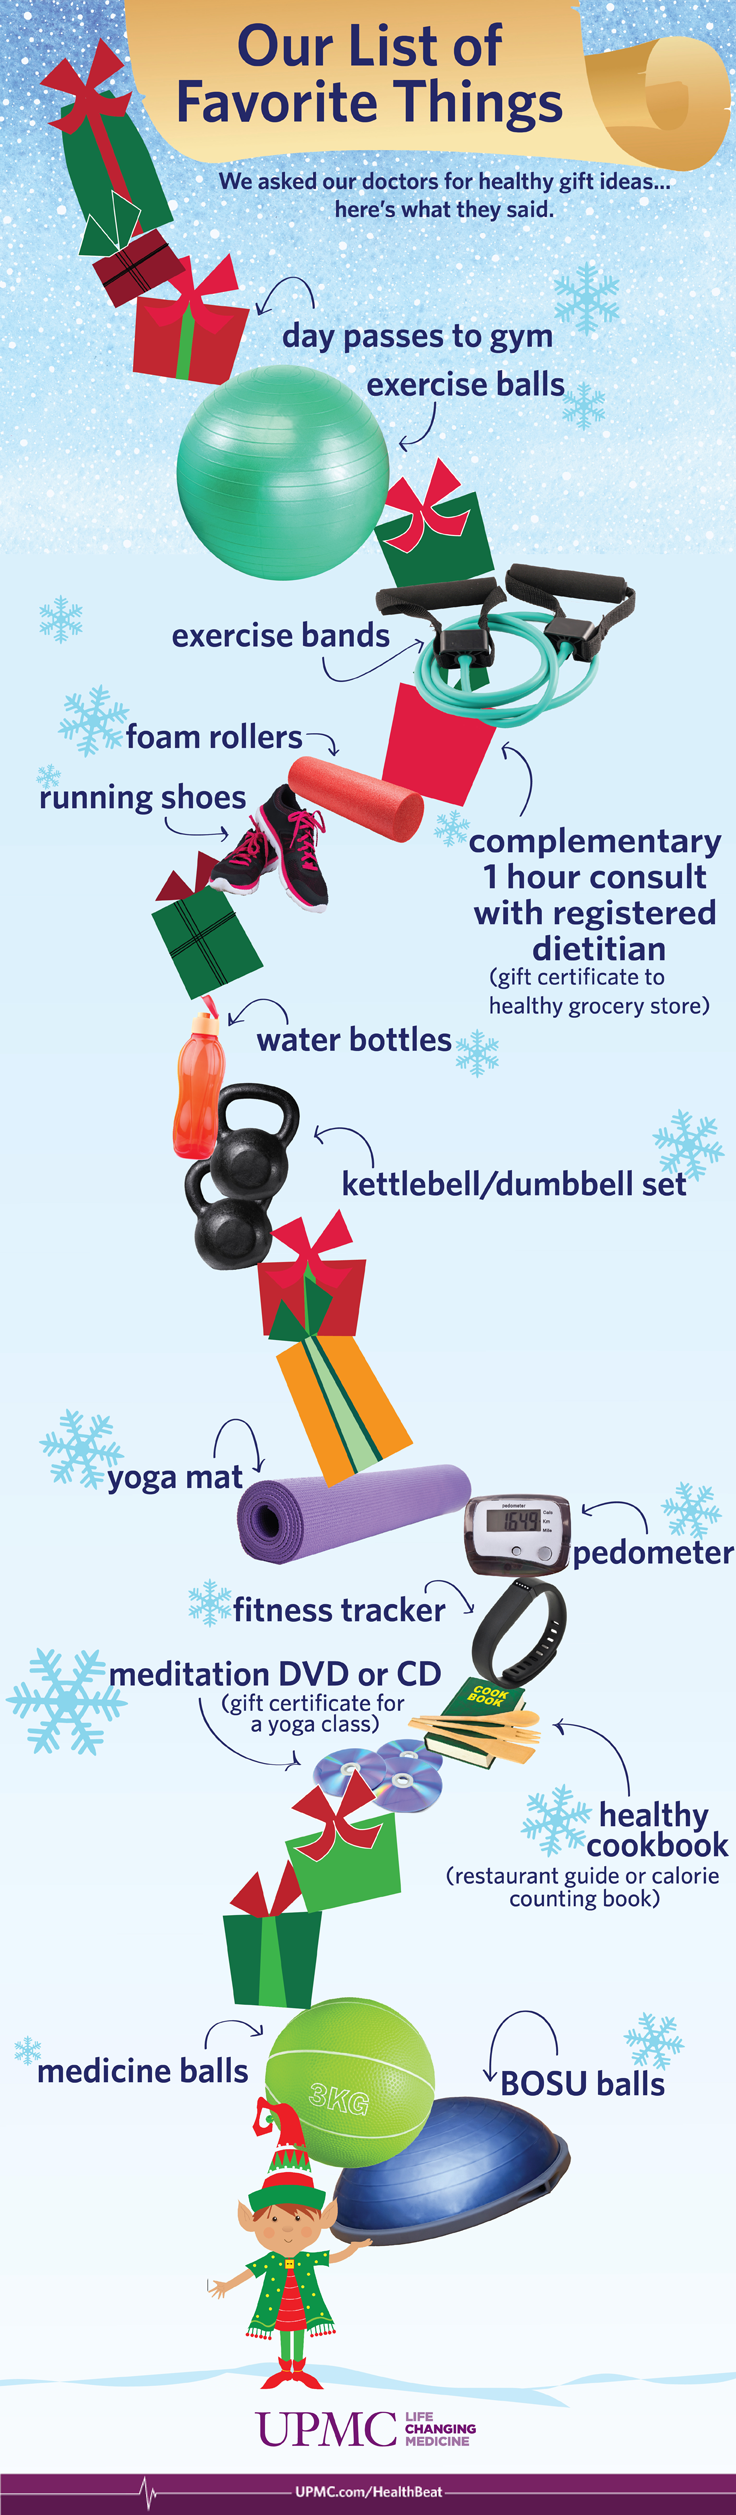 UPMC Favorite Things Graphic